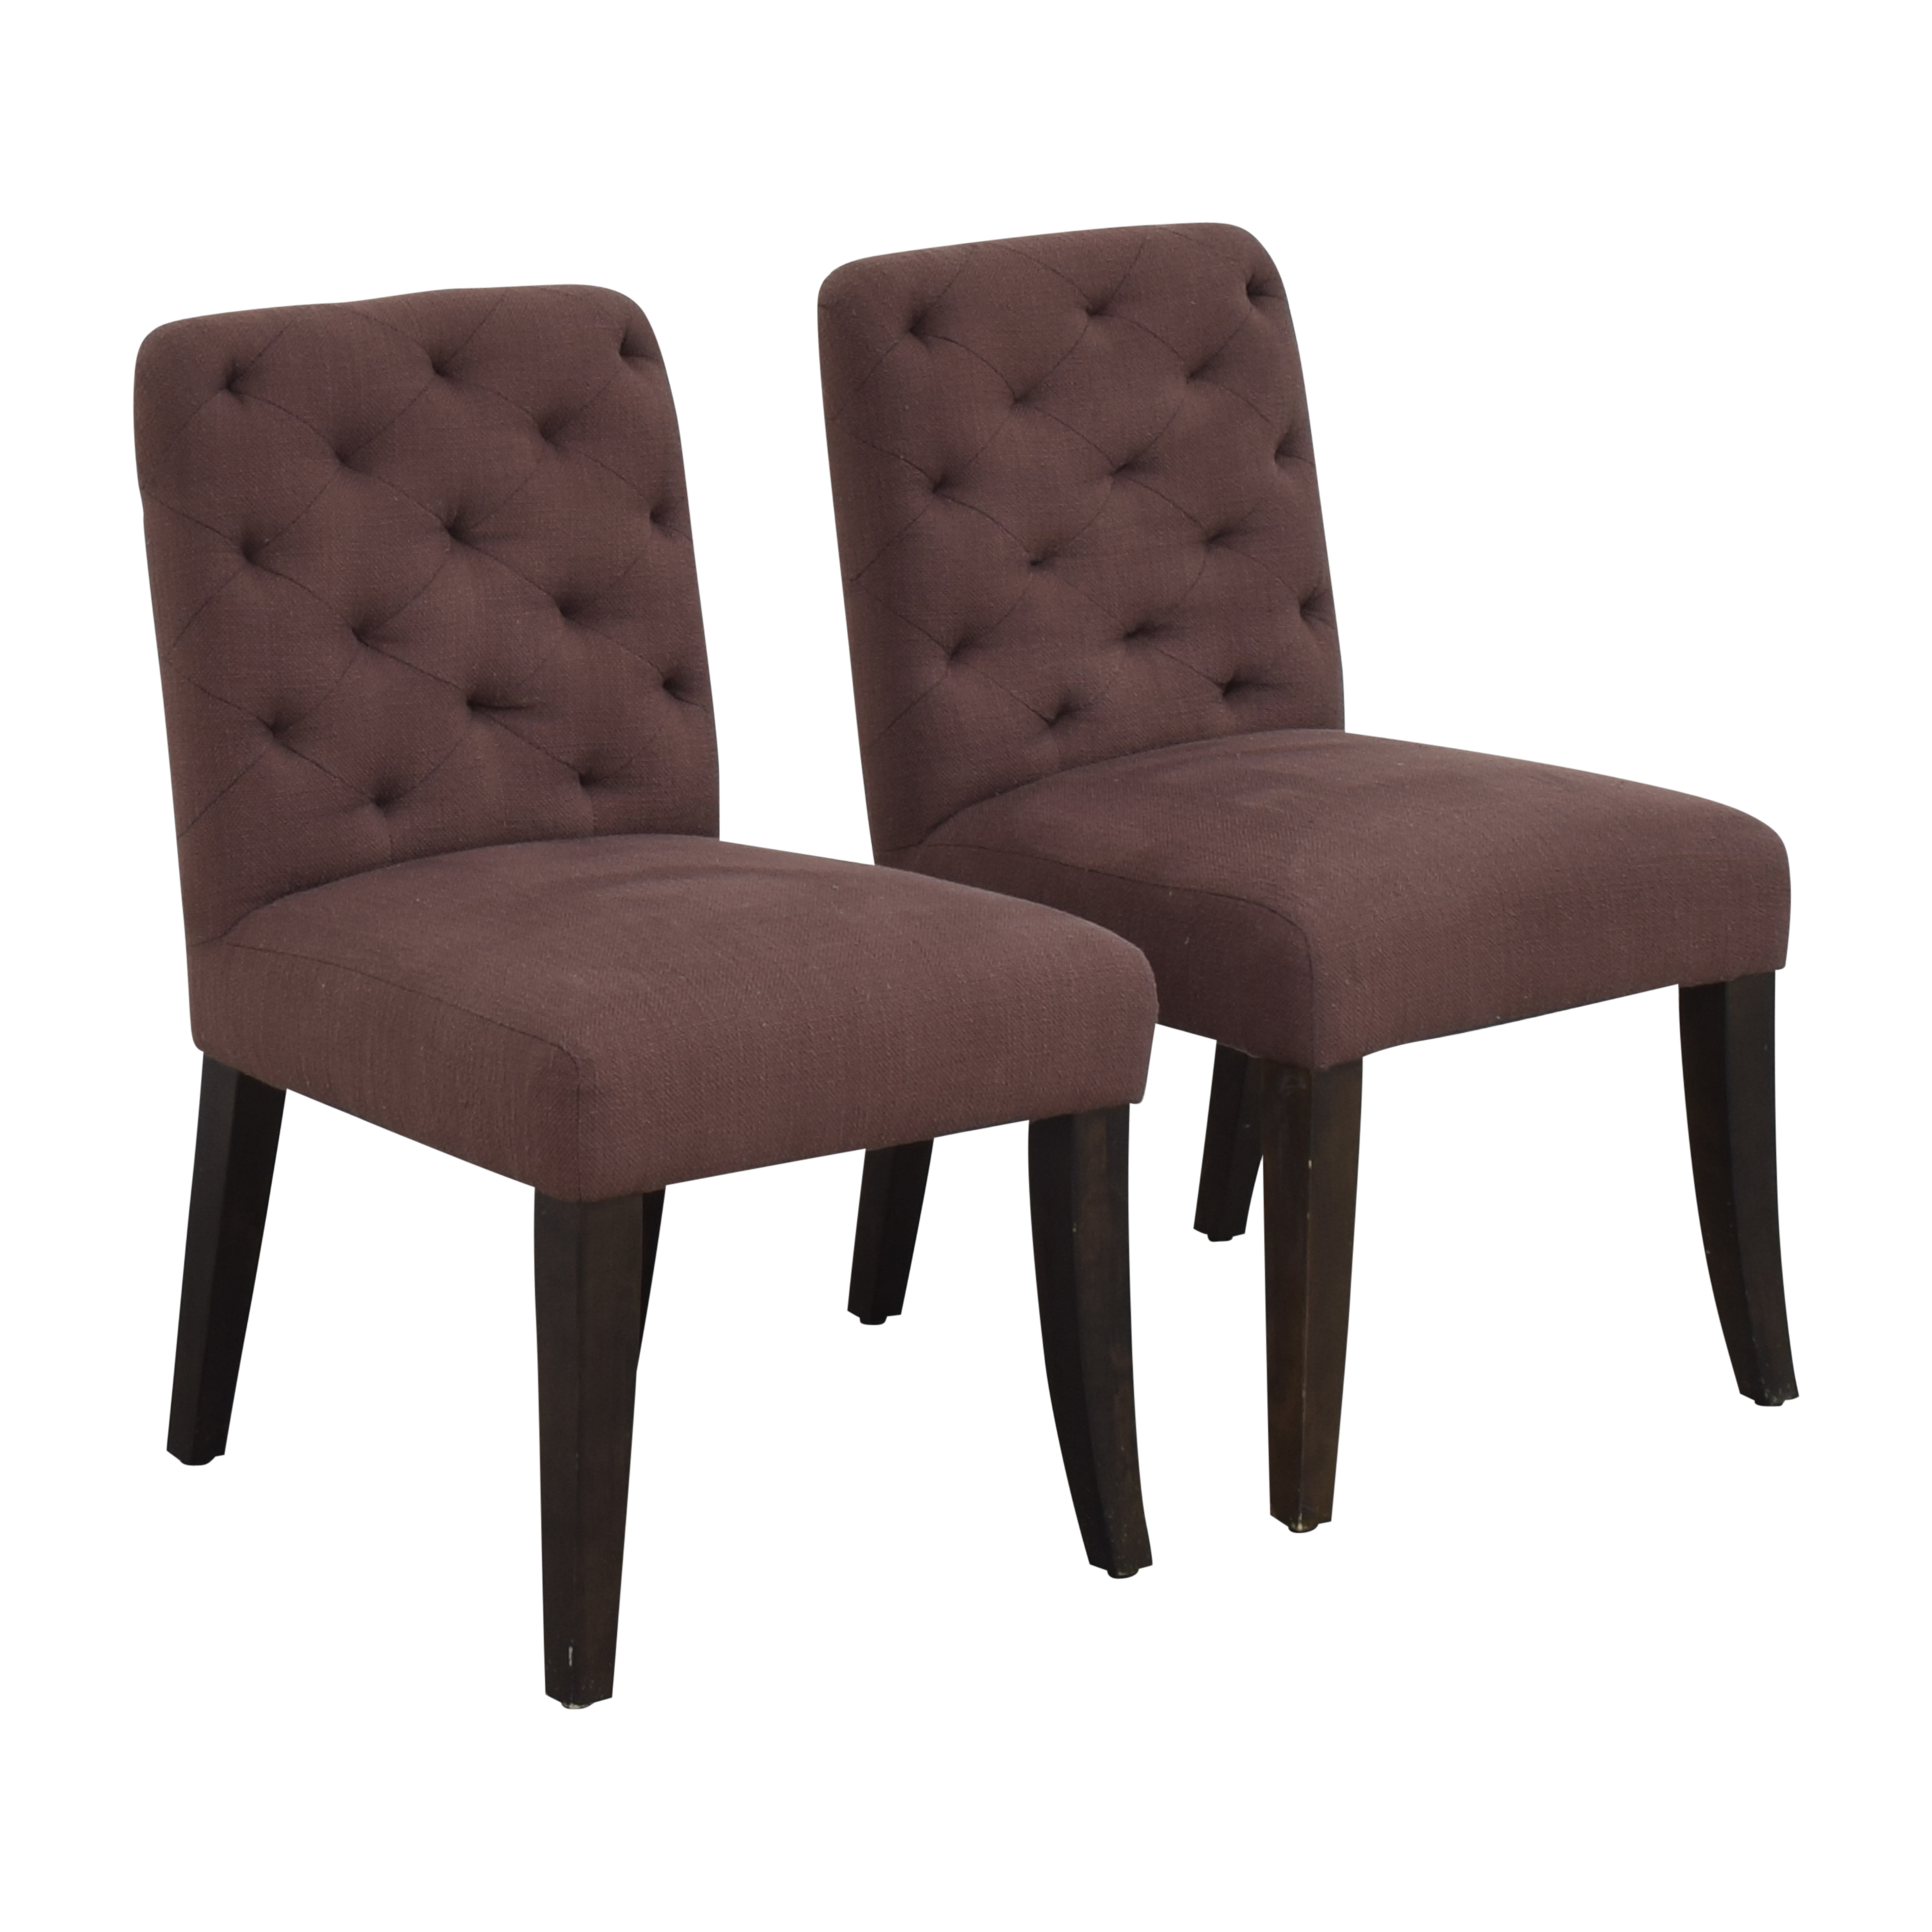 West Elm West Elm Elton Dining Chairs used